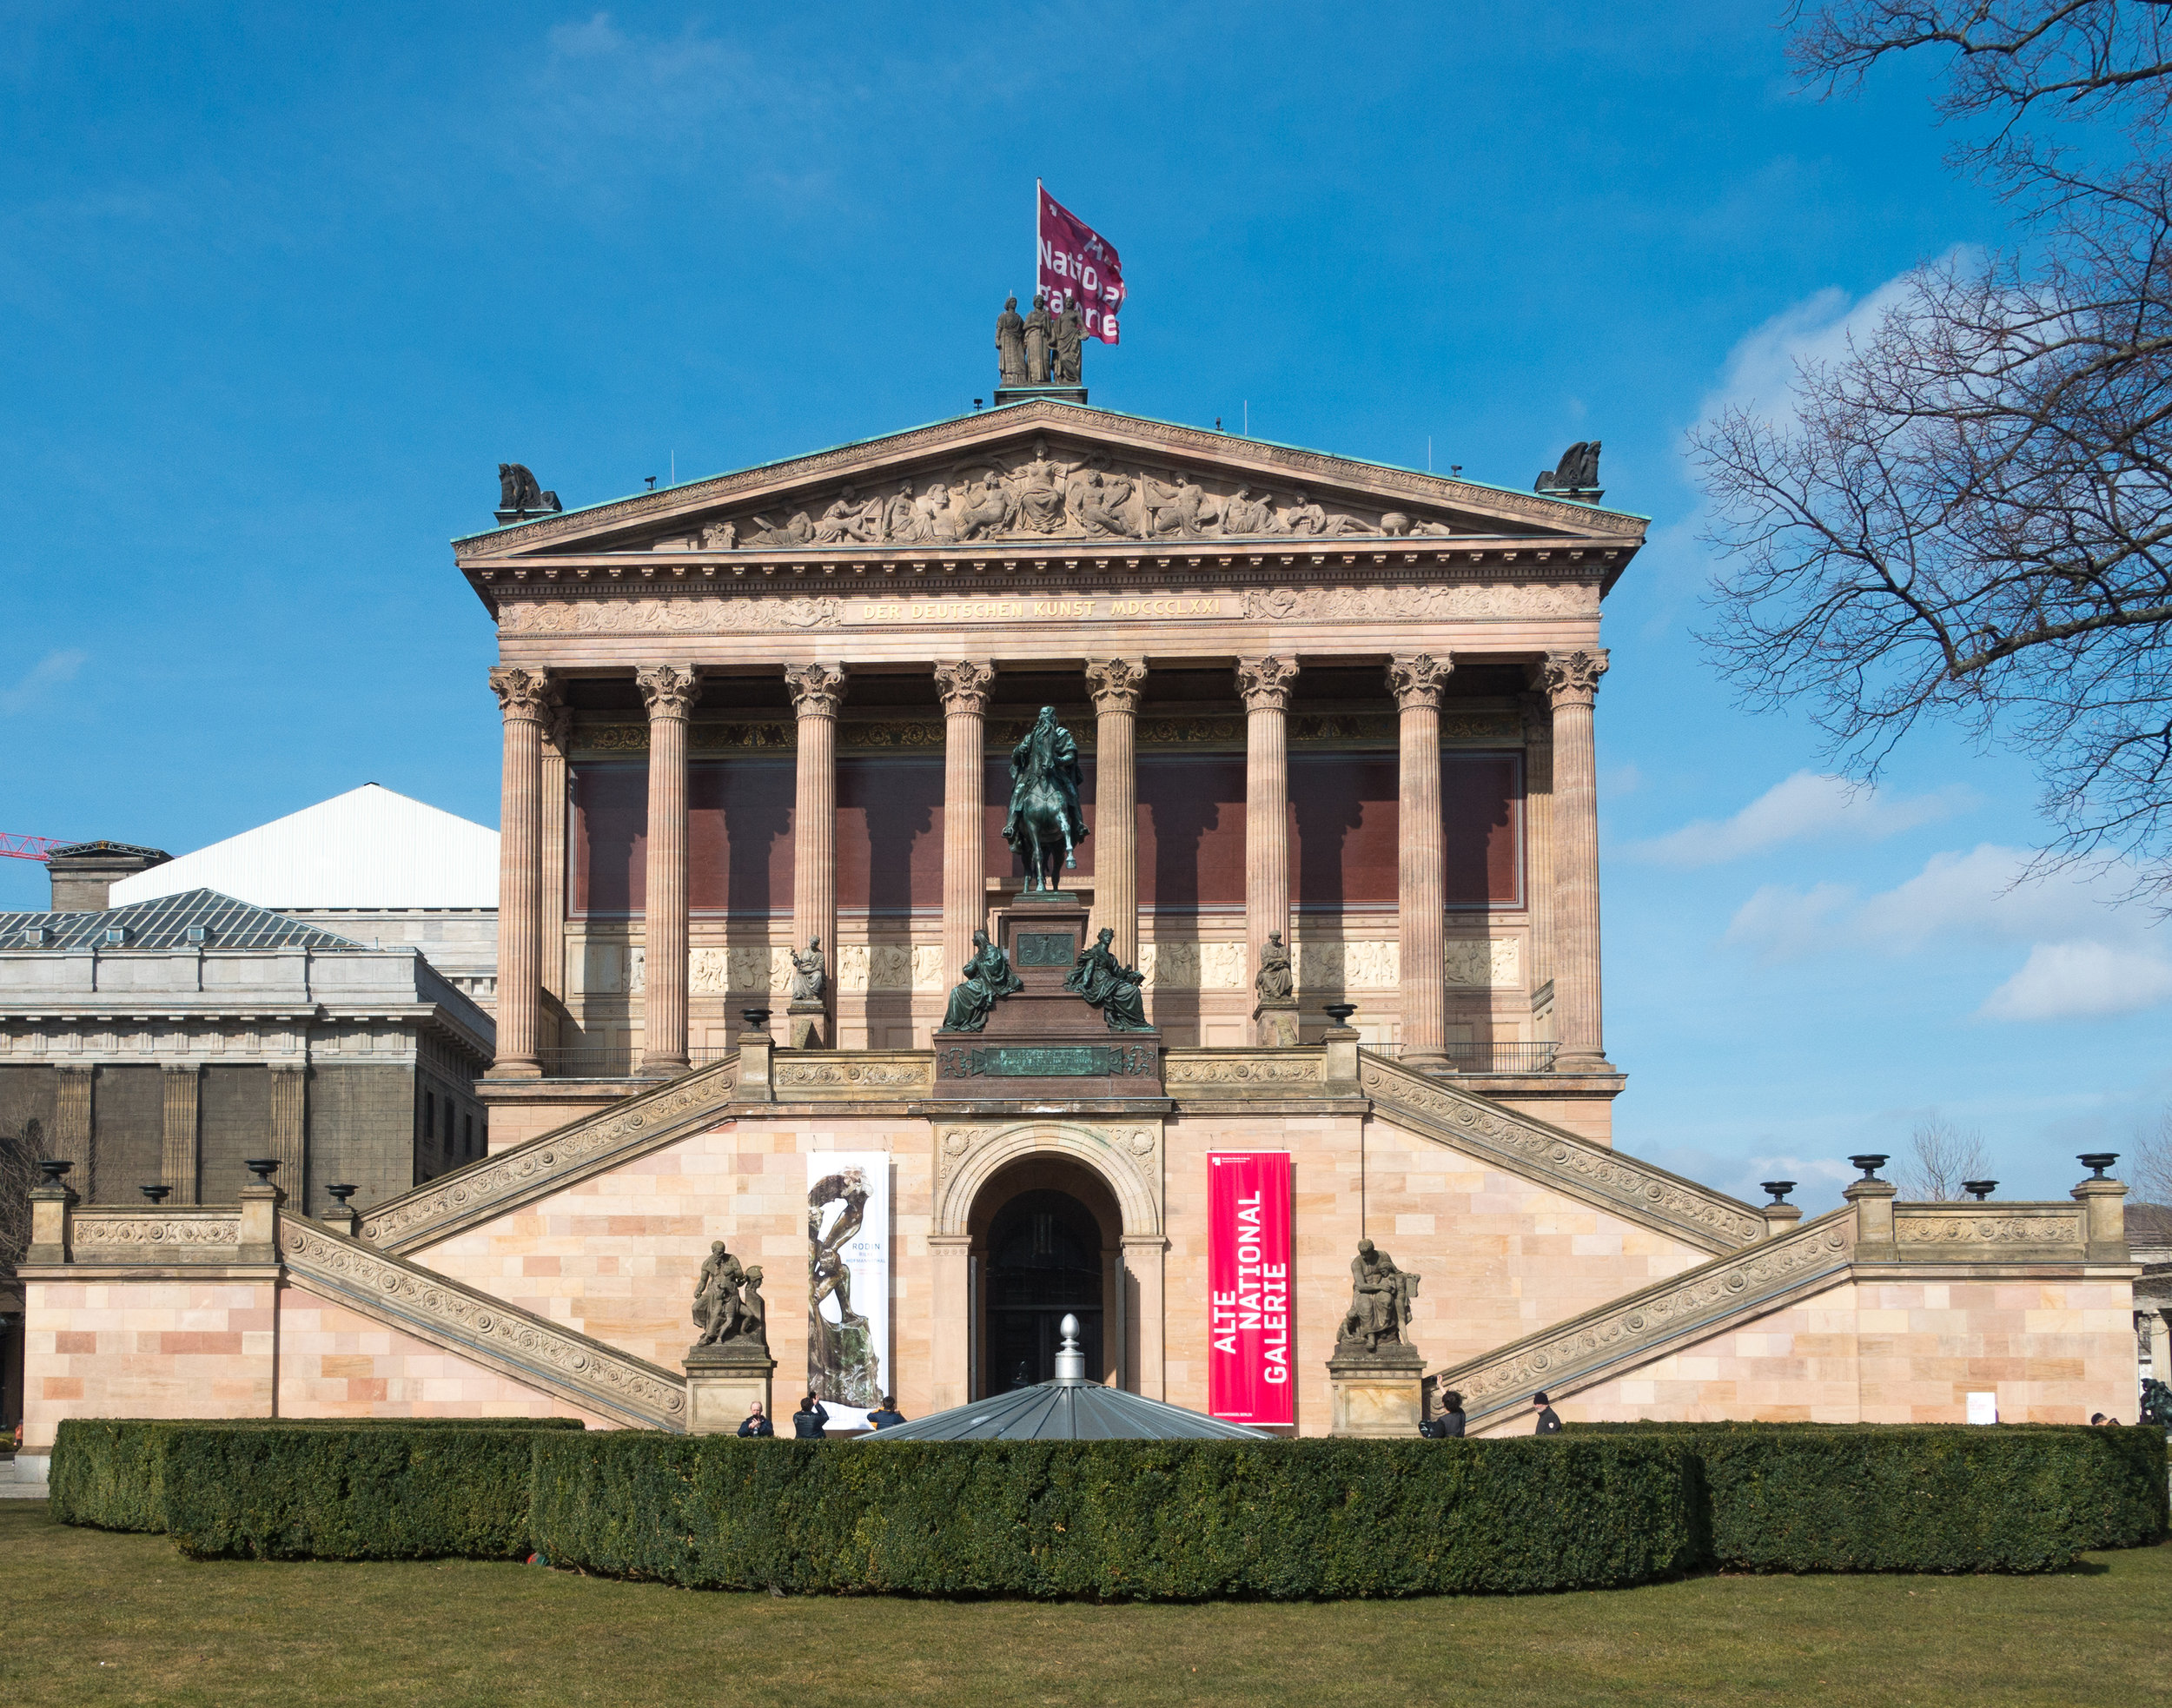 Alte Nationalgalerie - houses neoclassical and romantic art and also impressionists and some modernists works.